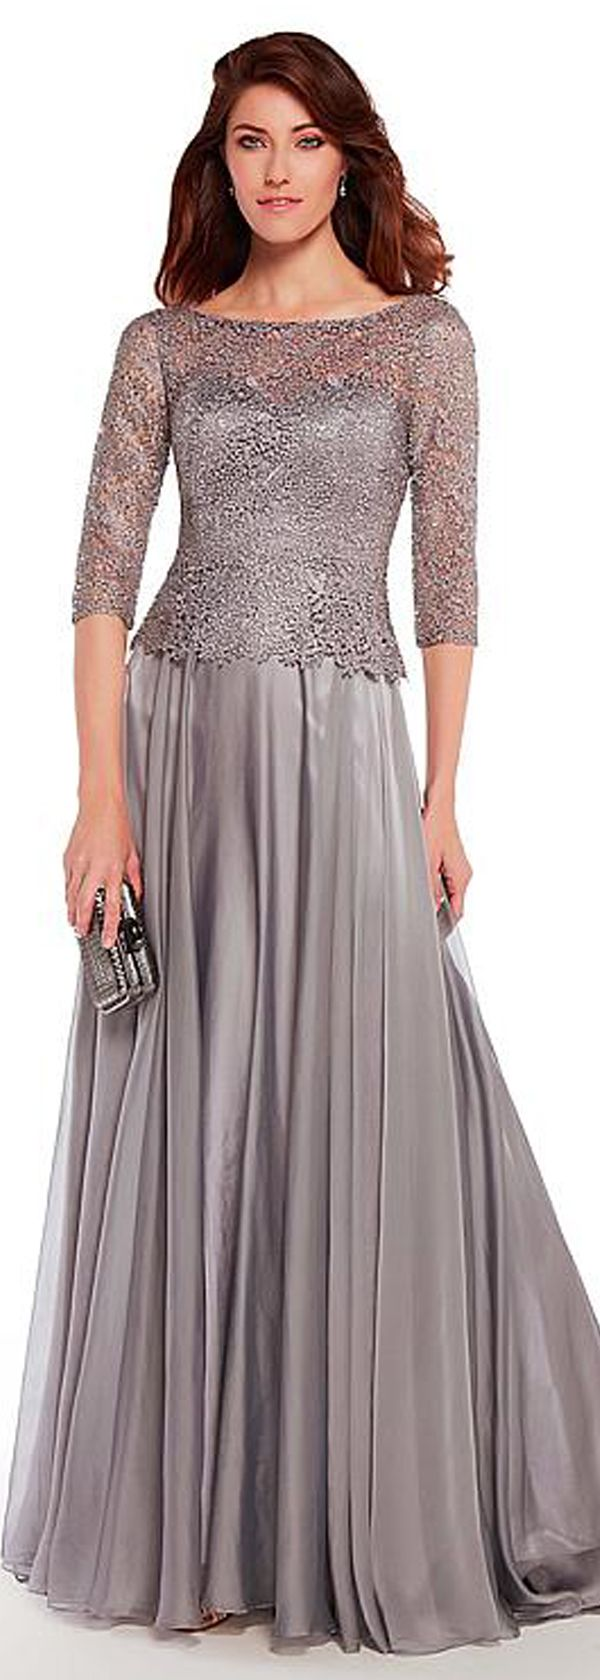 Fabulous Lace & Silk Like Chiffon Bateau Neckline 3/4 Length Sleeves A-line Mother Of The Bride Dresses With Hot Fix Rhinestones